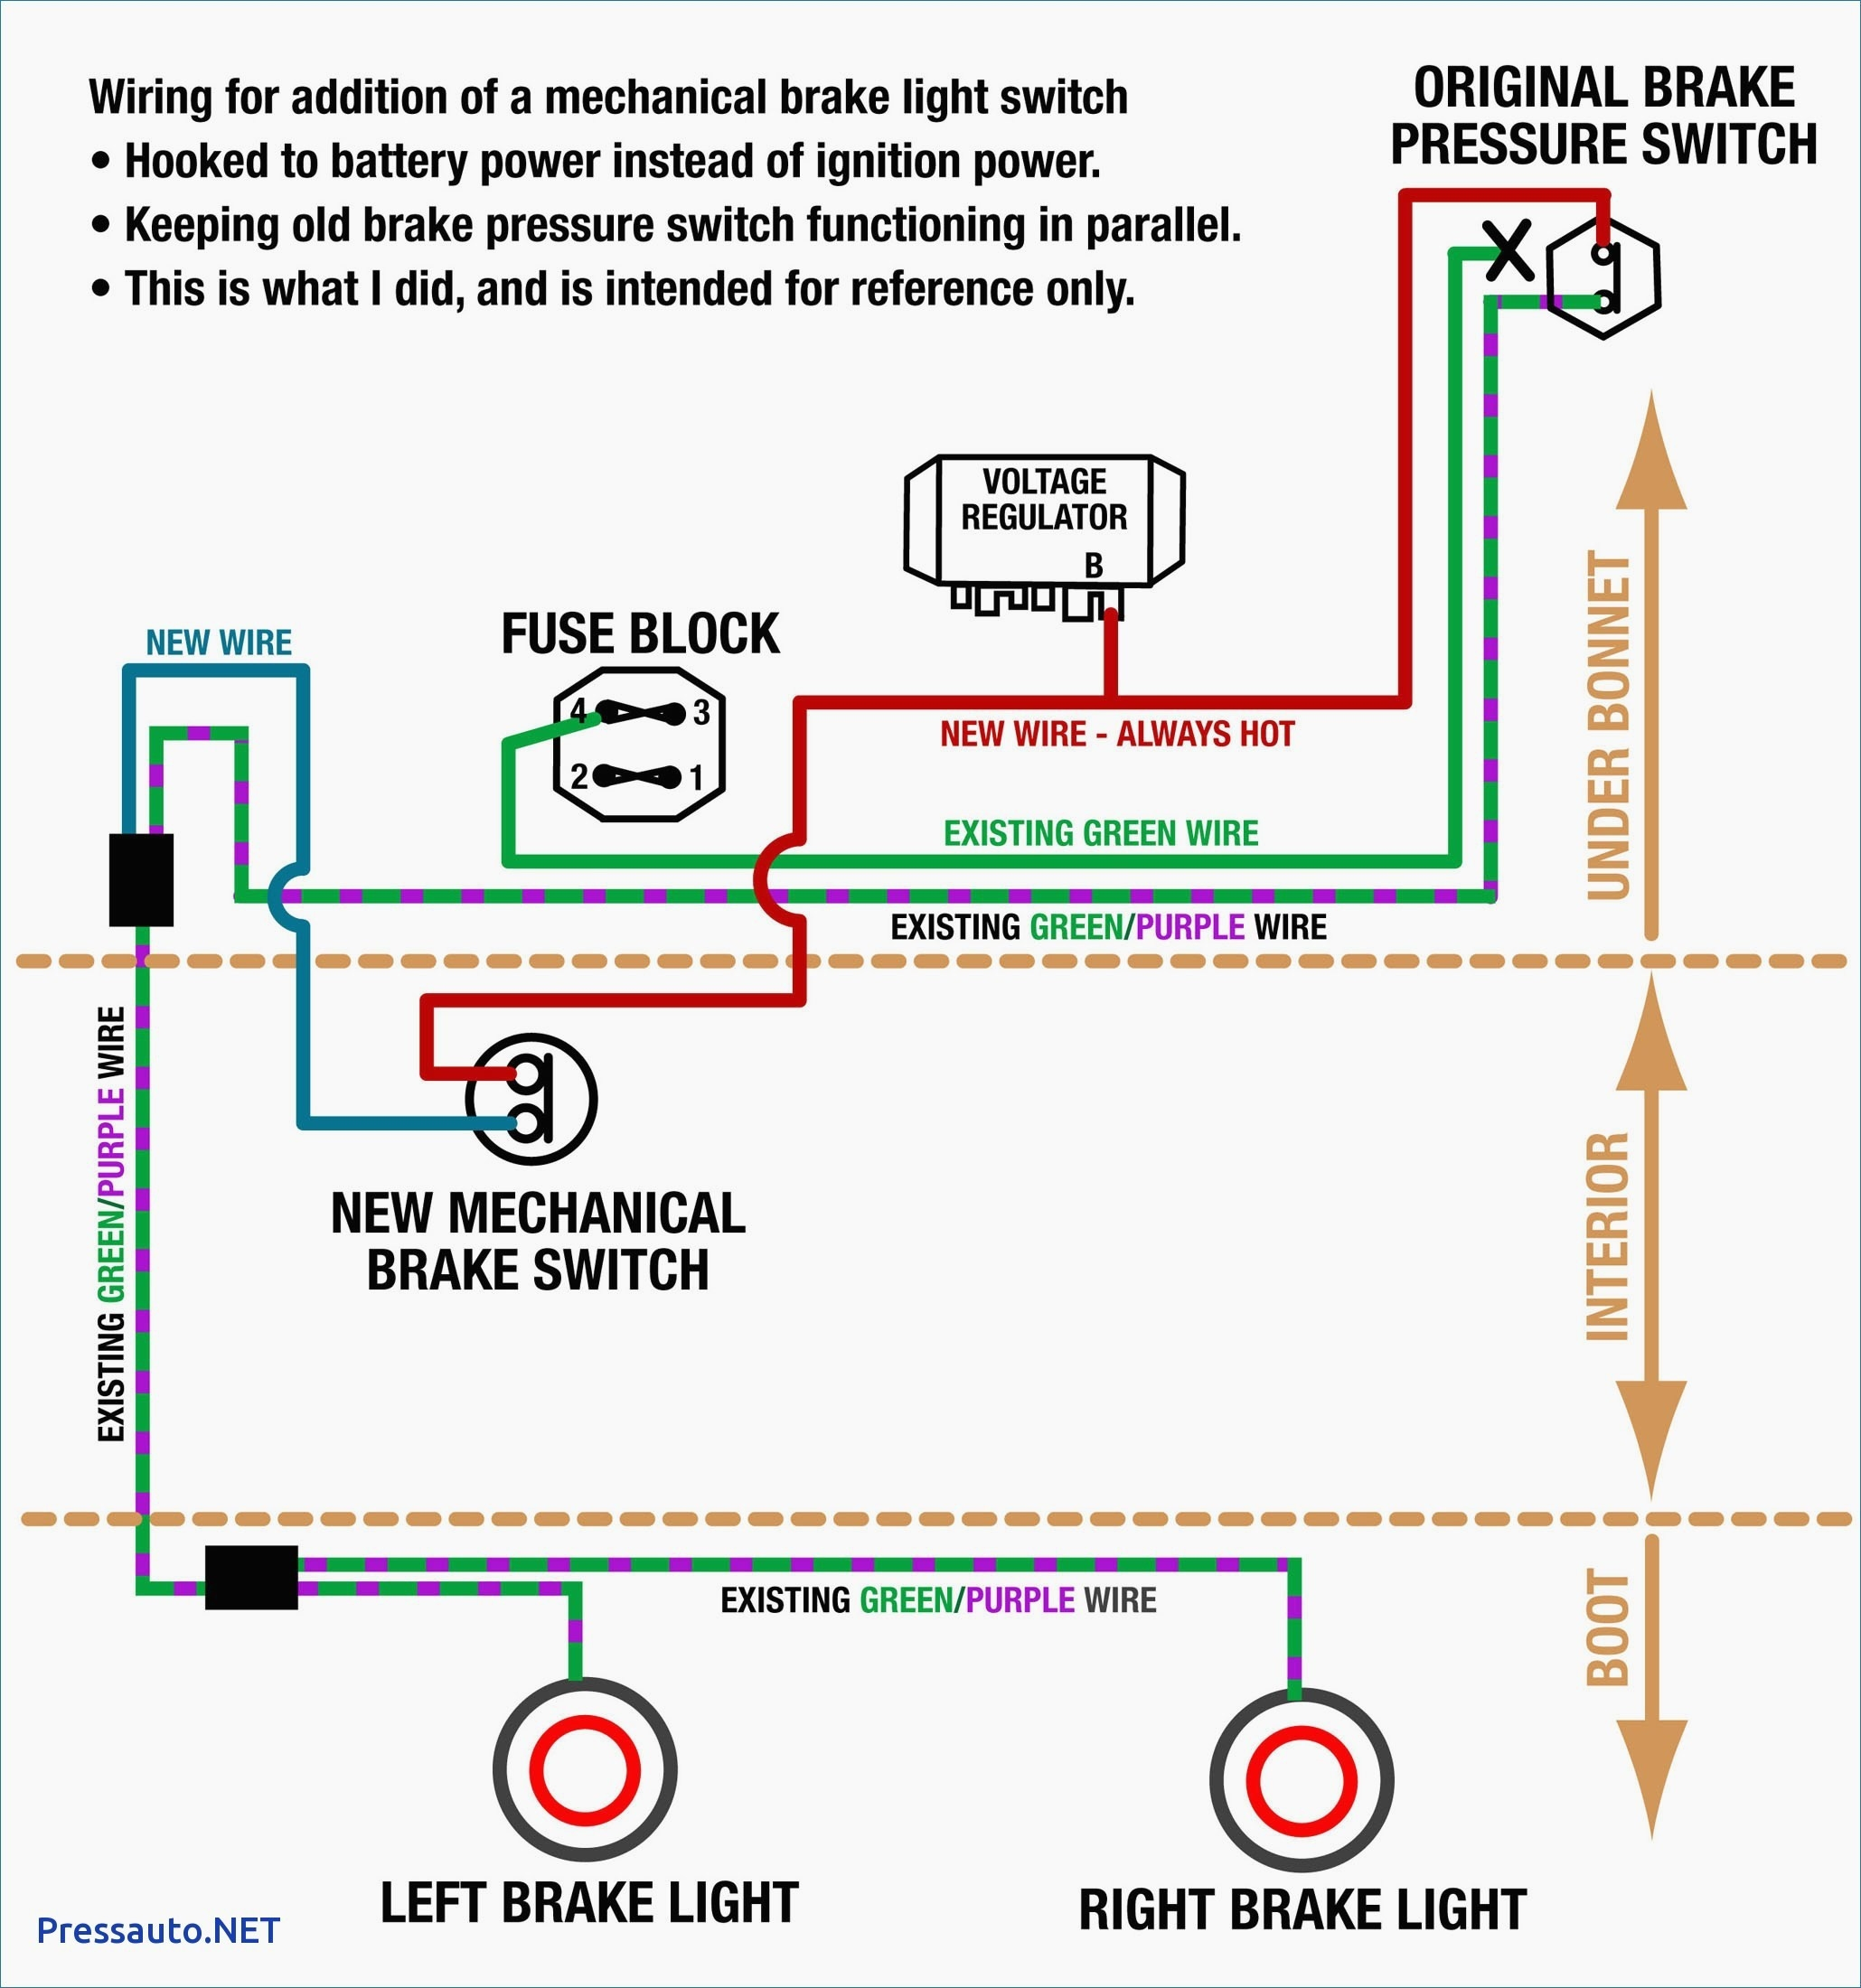 Great Dane Wiring Schematic -2011 Armada Stereo Wiring Diagram | Begeboy Wiring  Diagram SourceBegeboy Wiring Diagram Source